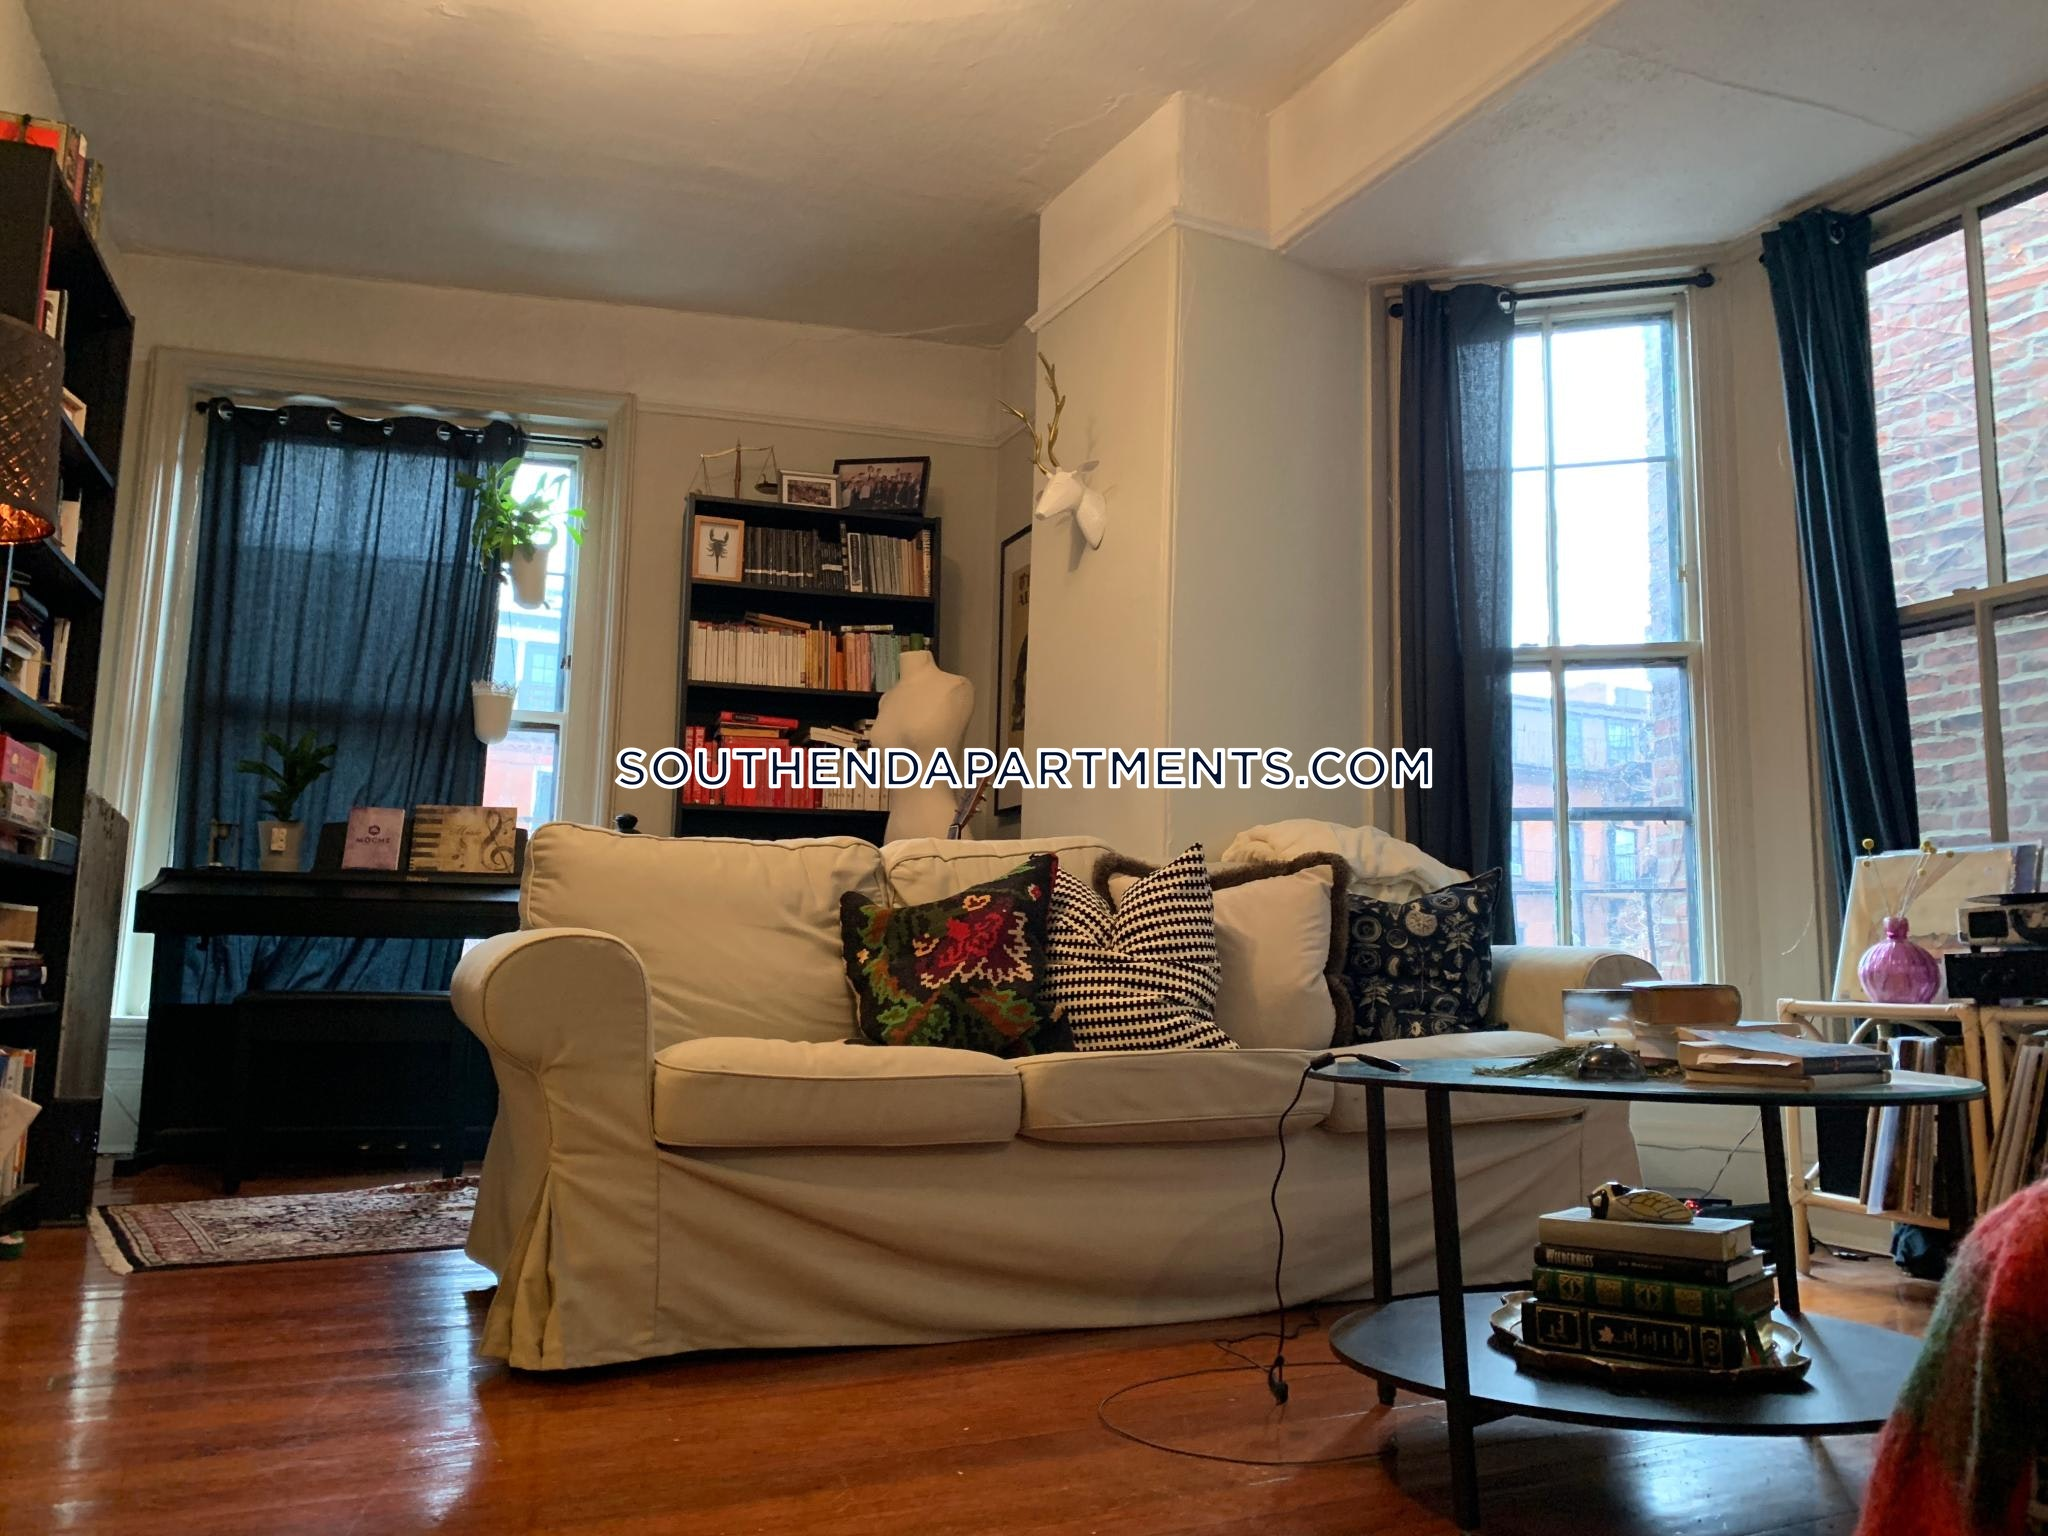 South end apartment for rent 1 bedroom 1 bath boston 2 800 - Boston 1 bedroom apartments for sale ...